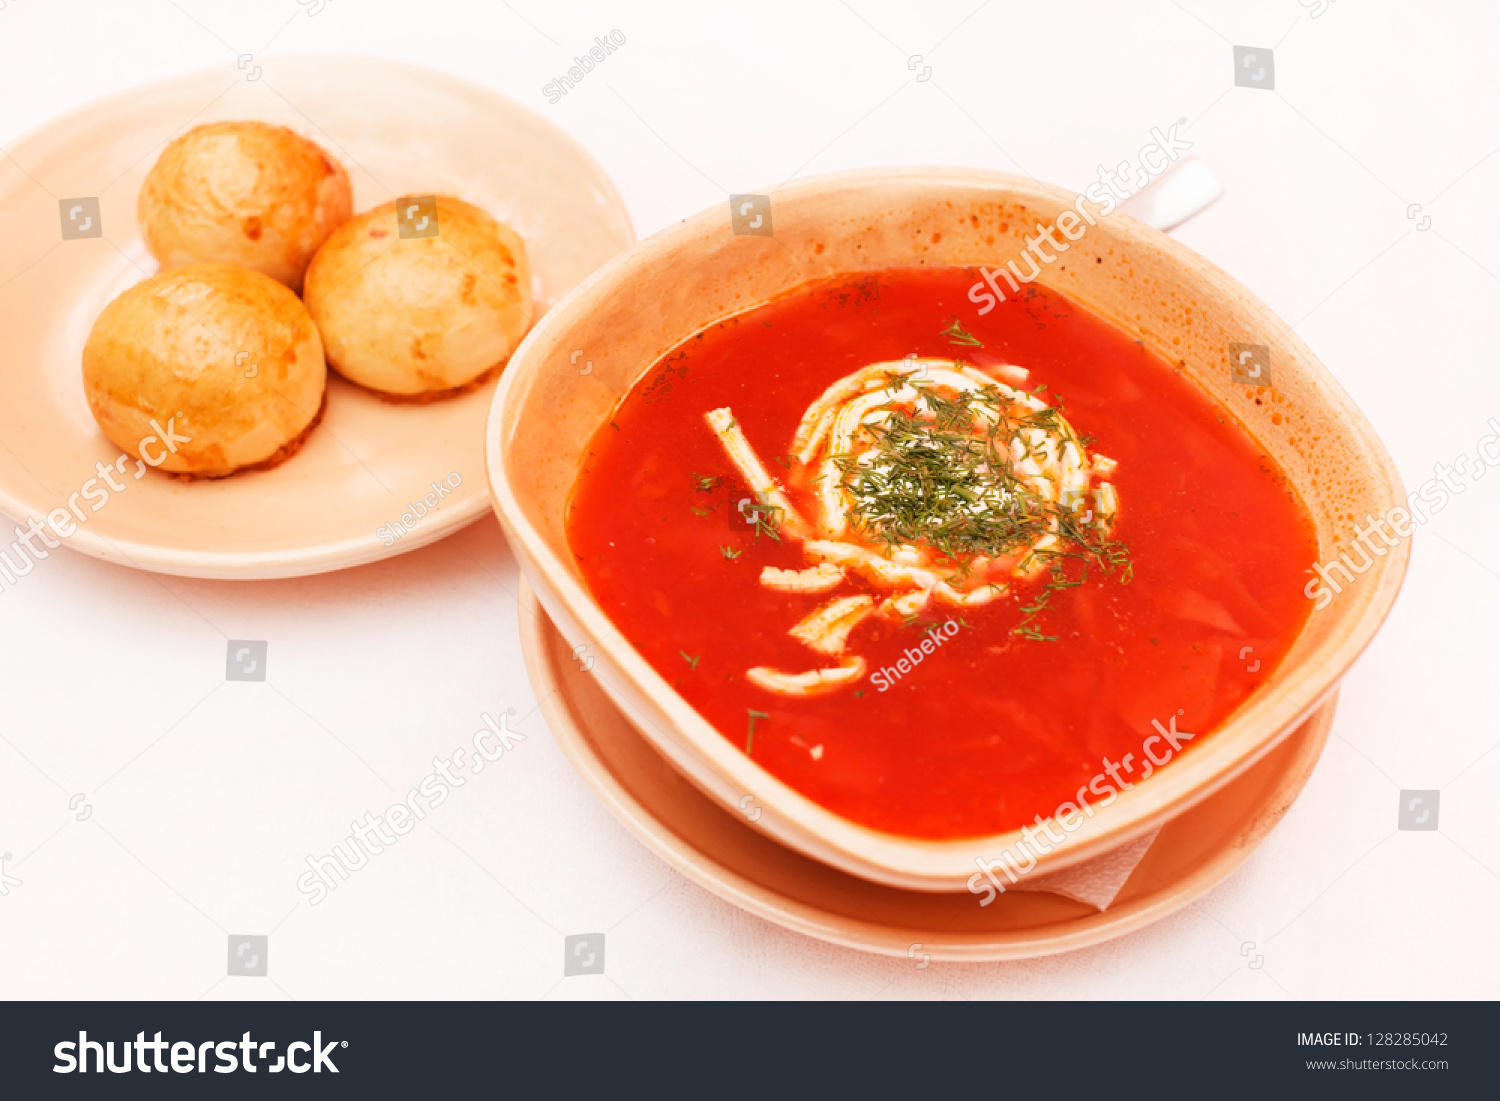 Borscht - Beet Soup Stock Photo 128285042 : Shutterstock